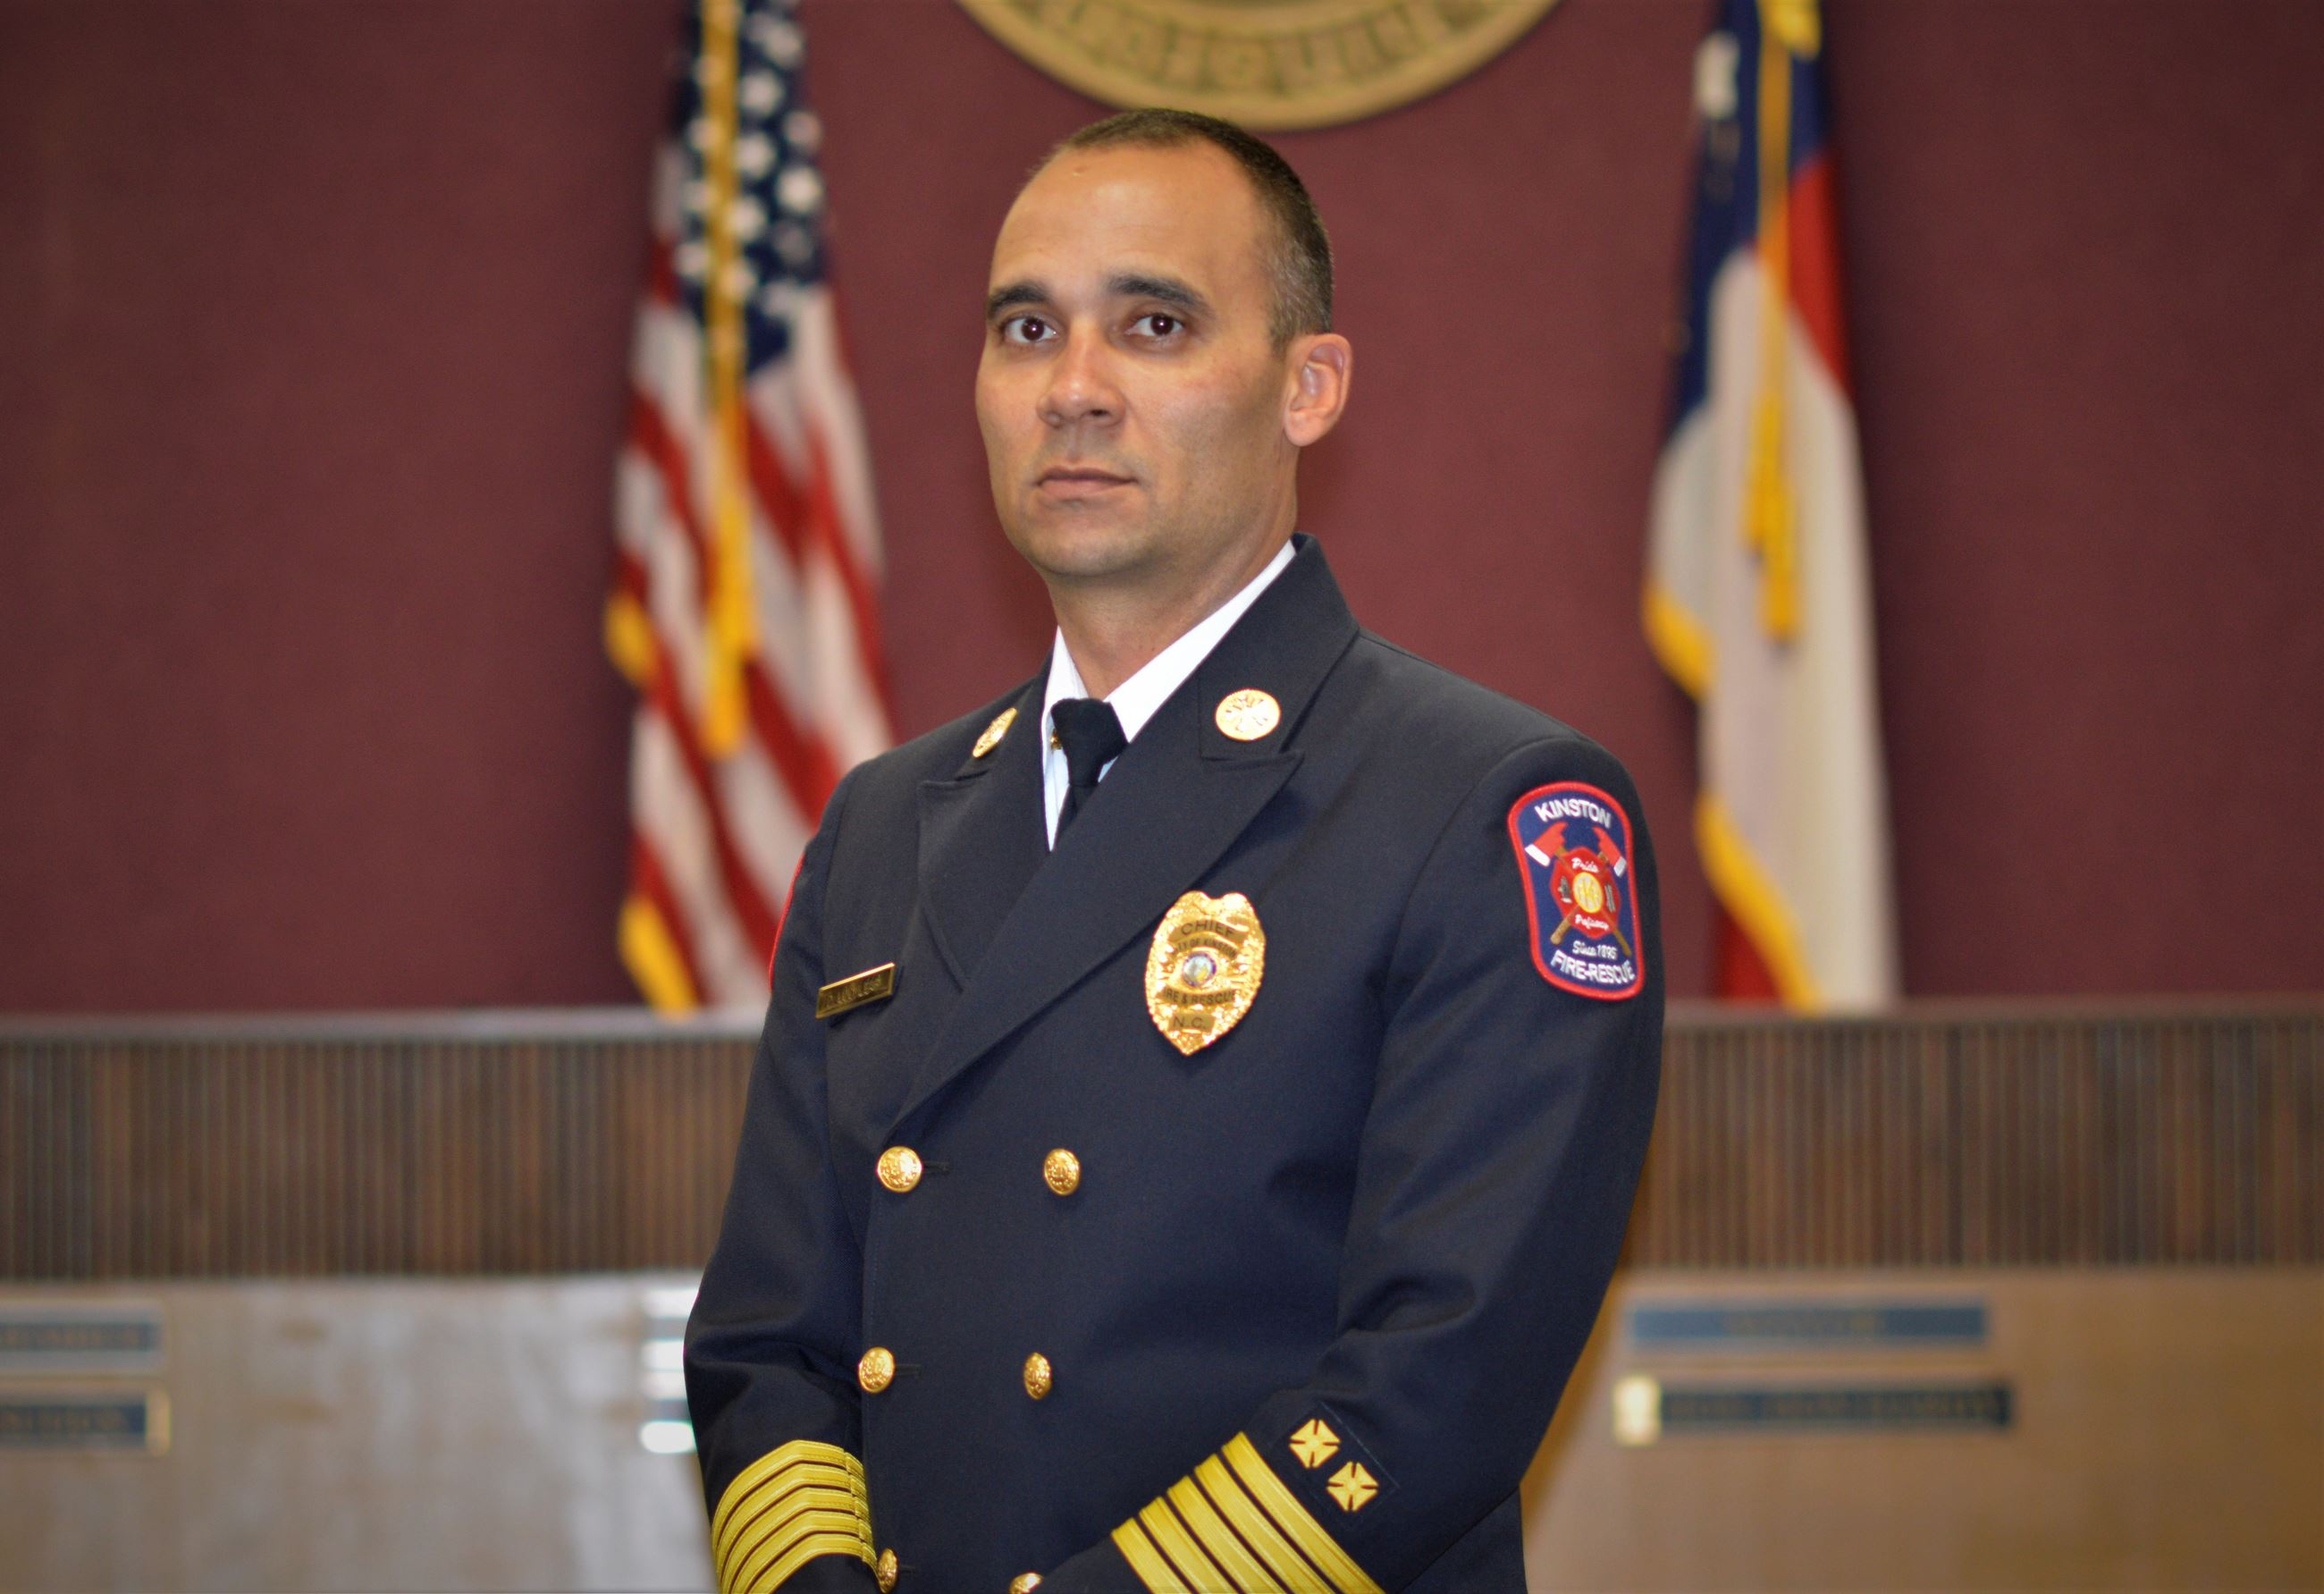 Chief Damien Locklear